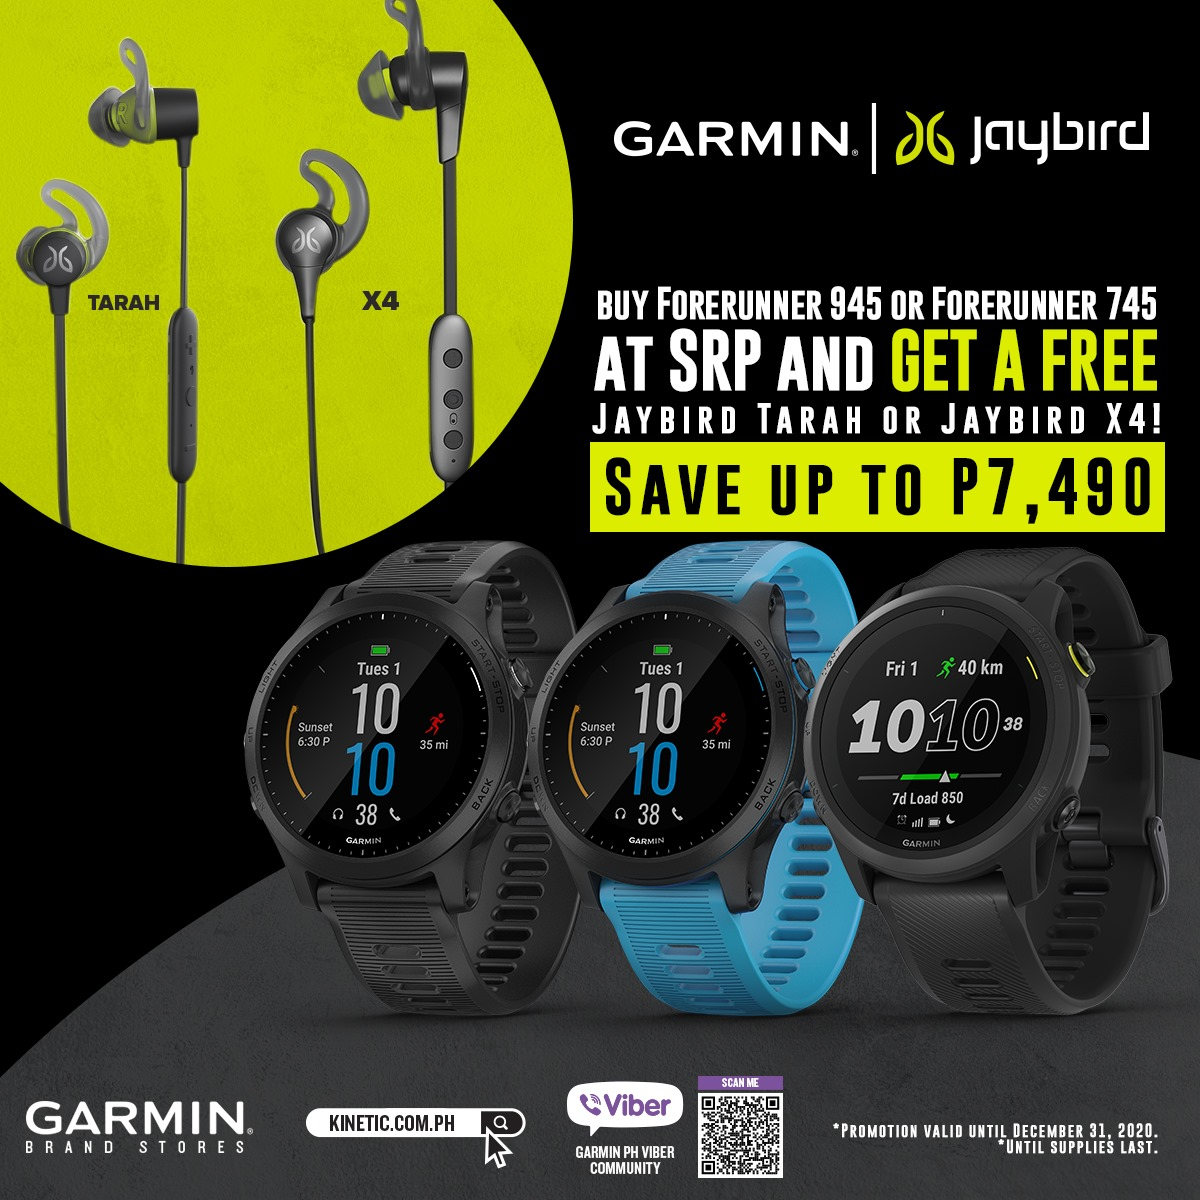 Last minute holiday shopping? Fret no more because our December Deals just keep getting BIGGER and BOLDER!  Thoughtful gifts can still be secured in time for the holiday. Check out our bundle deals for the fitness enthusiasts in your life. Buy a Garmin Forerunner 945 or a Garmin Forerunner 745 at SRP and GET A FREE Jaybird Tarah or Jaybird X4*! Save up to P7,490! Shop for him, for her, or better yet—shop for you. Gifts for everyone on your list.  Promotion valid until Decembe...r 31, 2020.